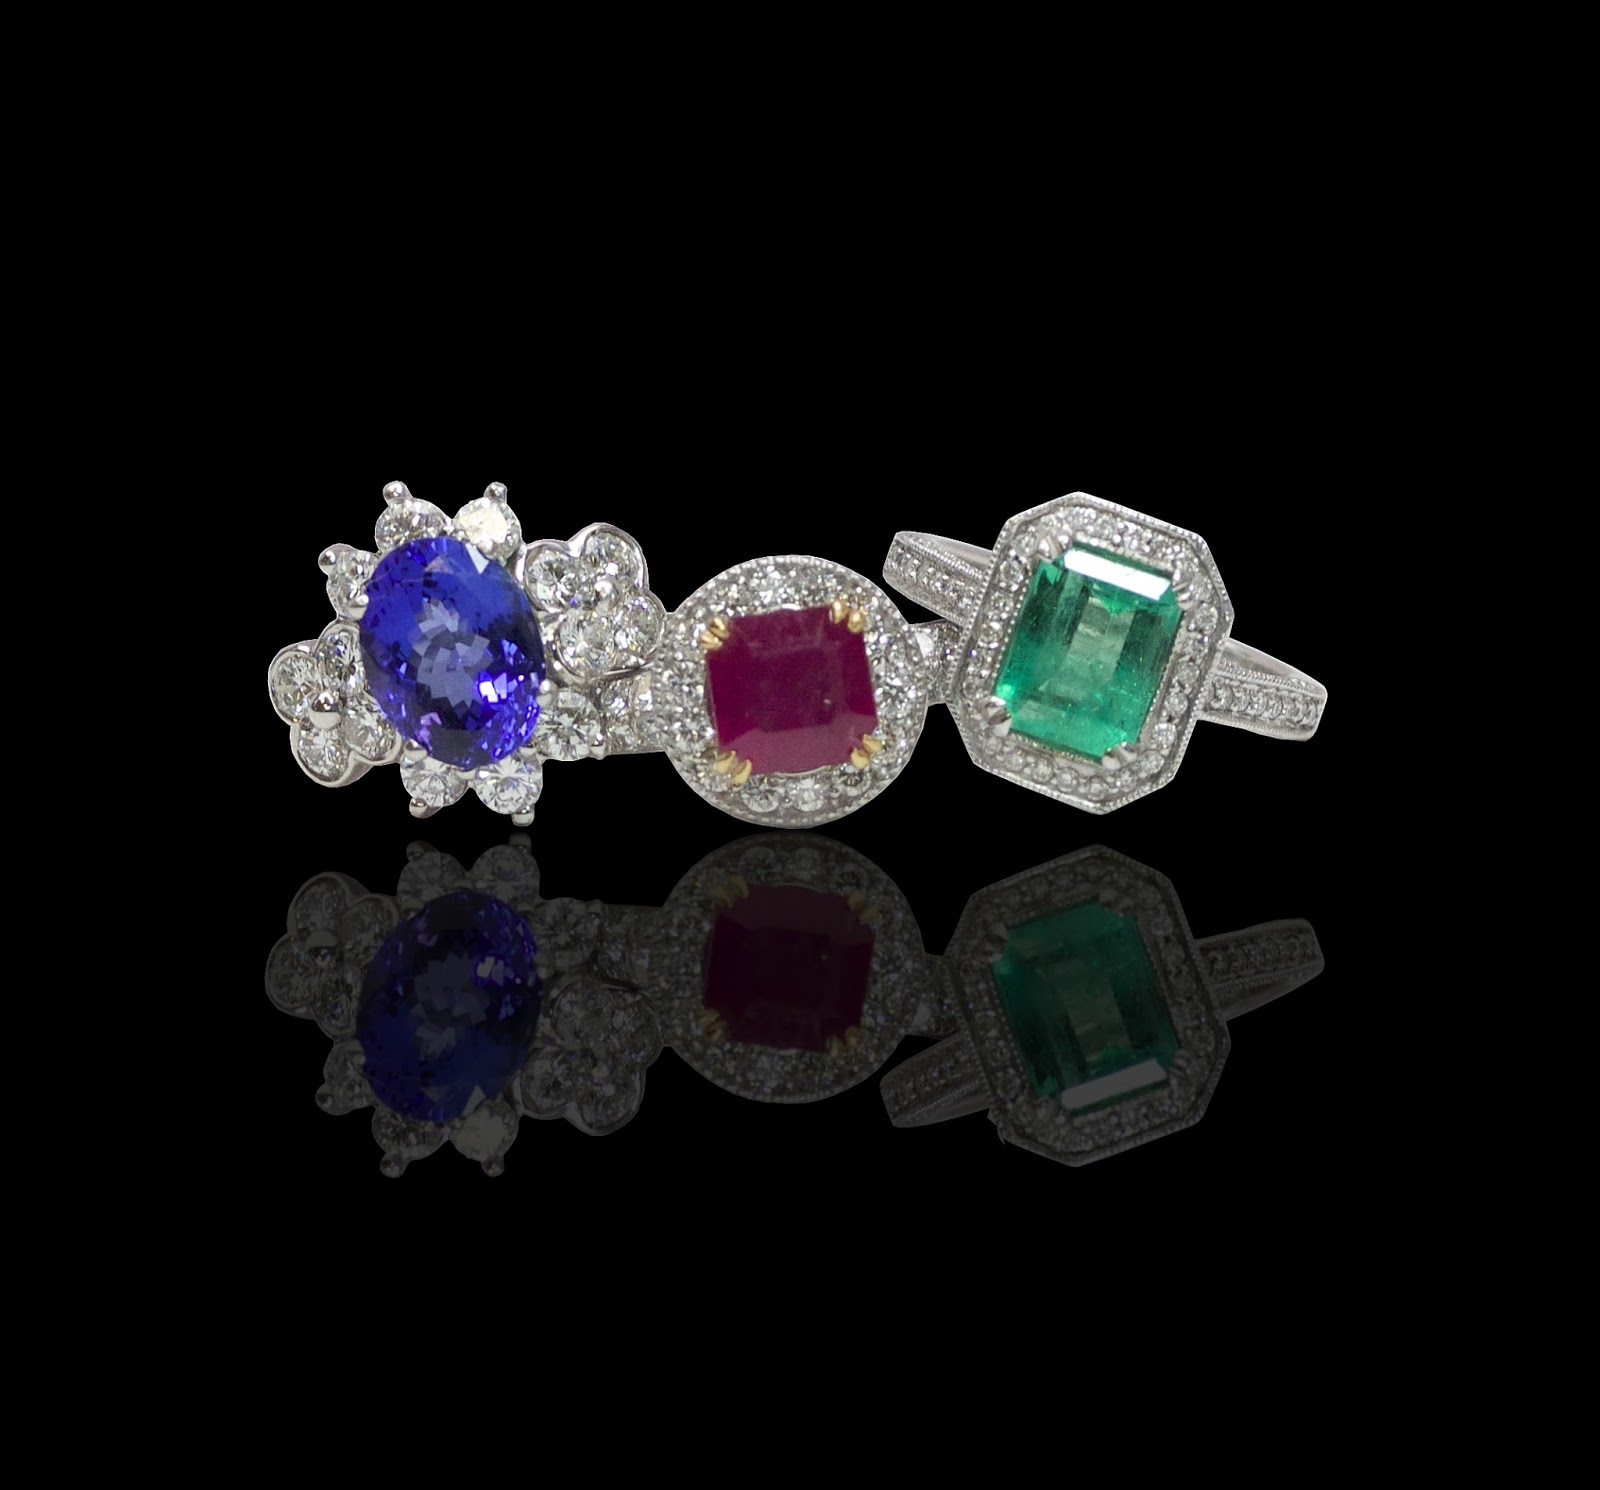 diamond blog dazzling ones rock give the precious your loved ring